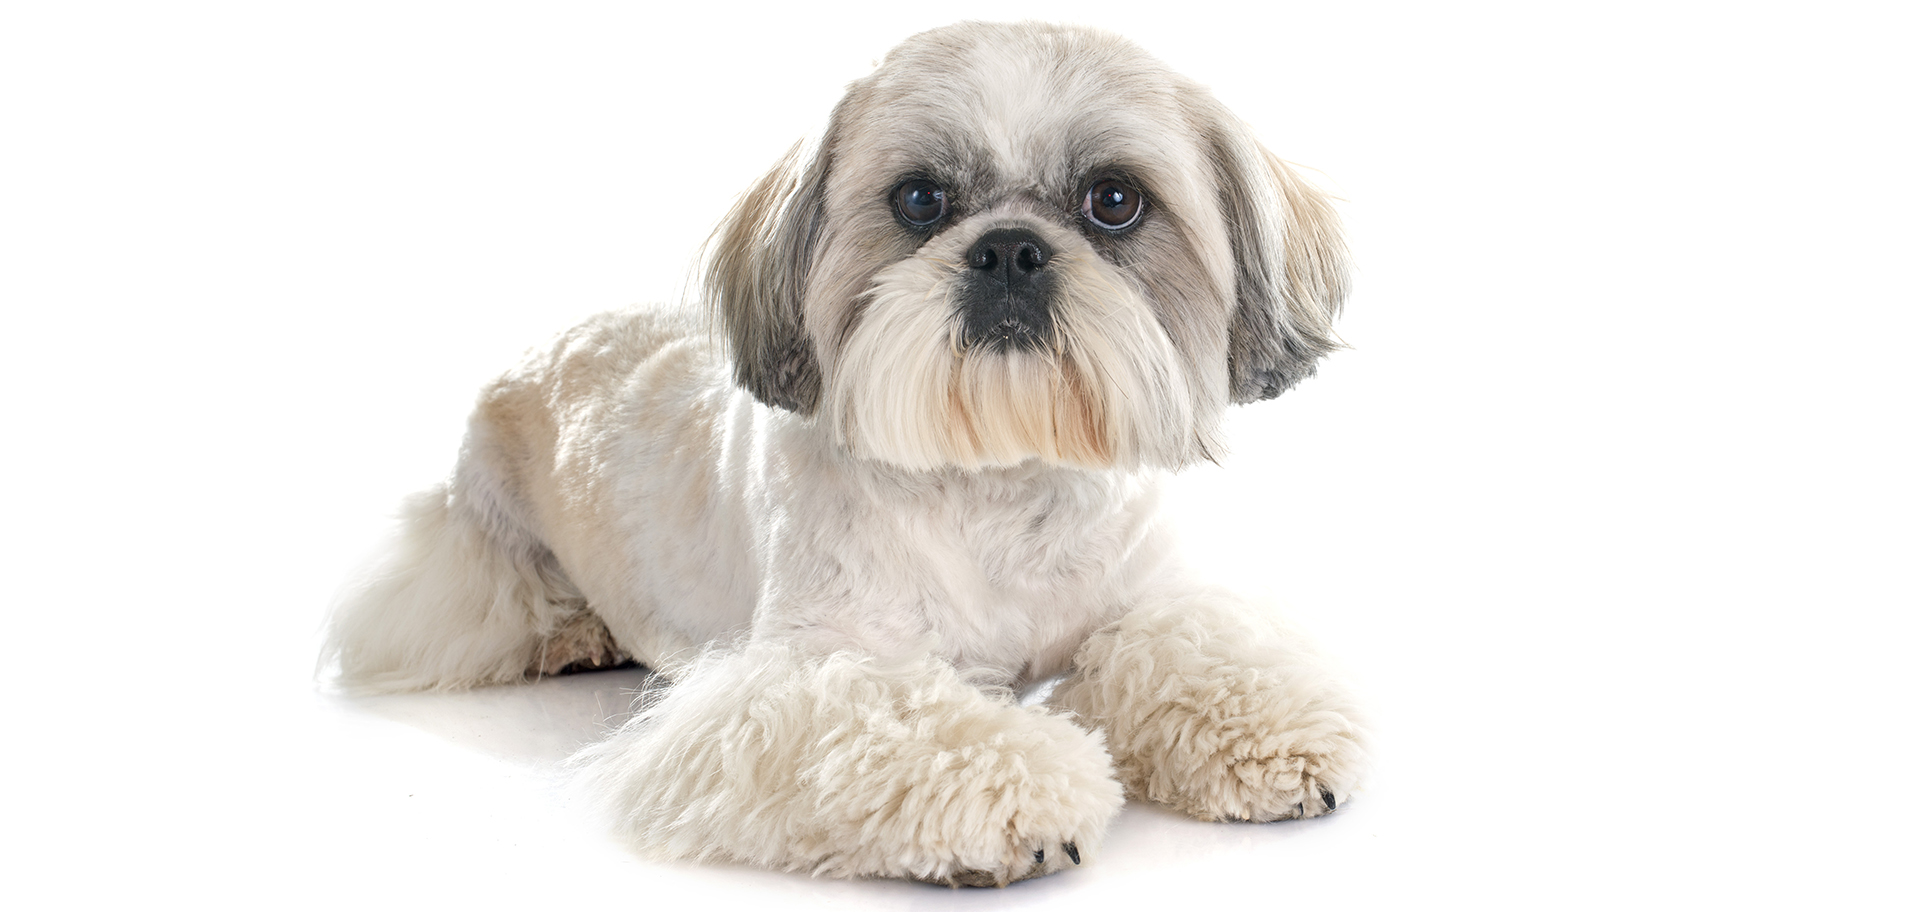 Breed Shih Tzu